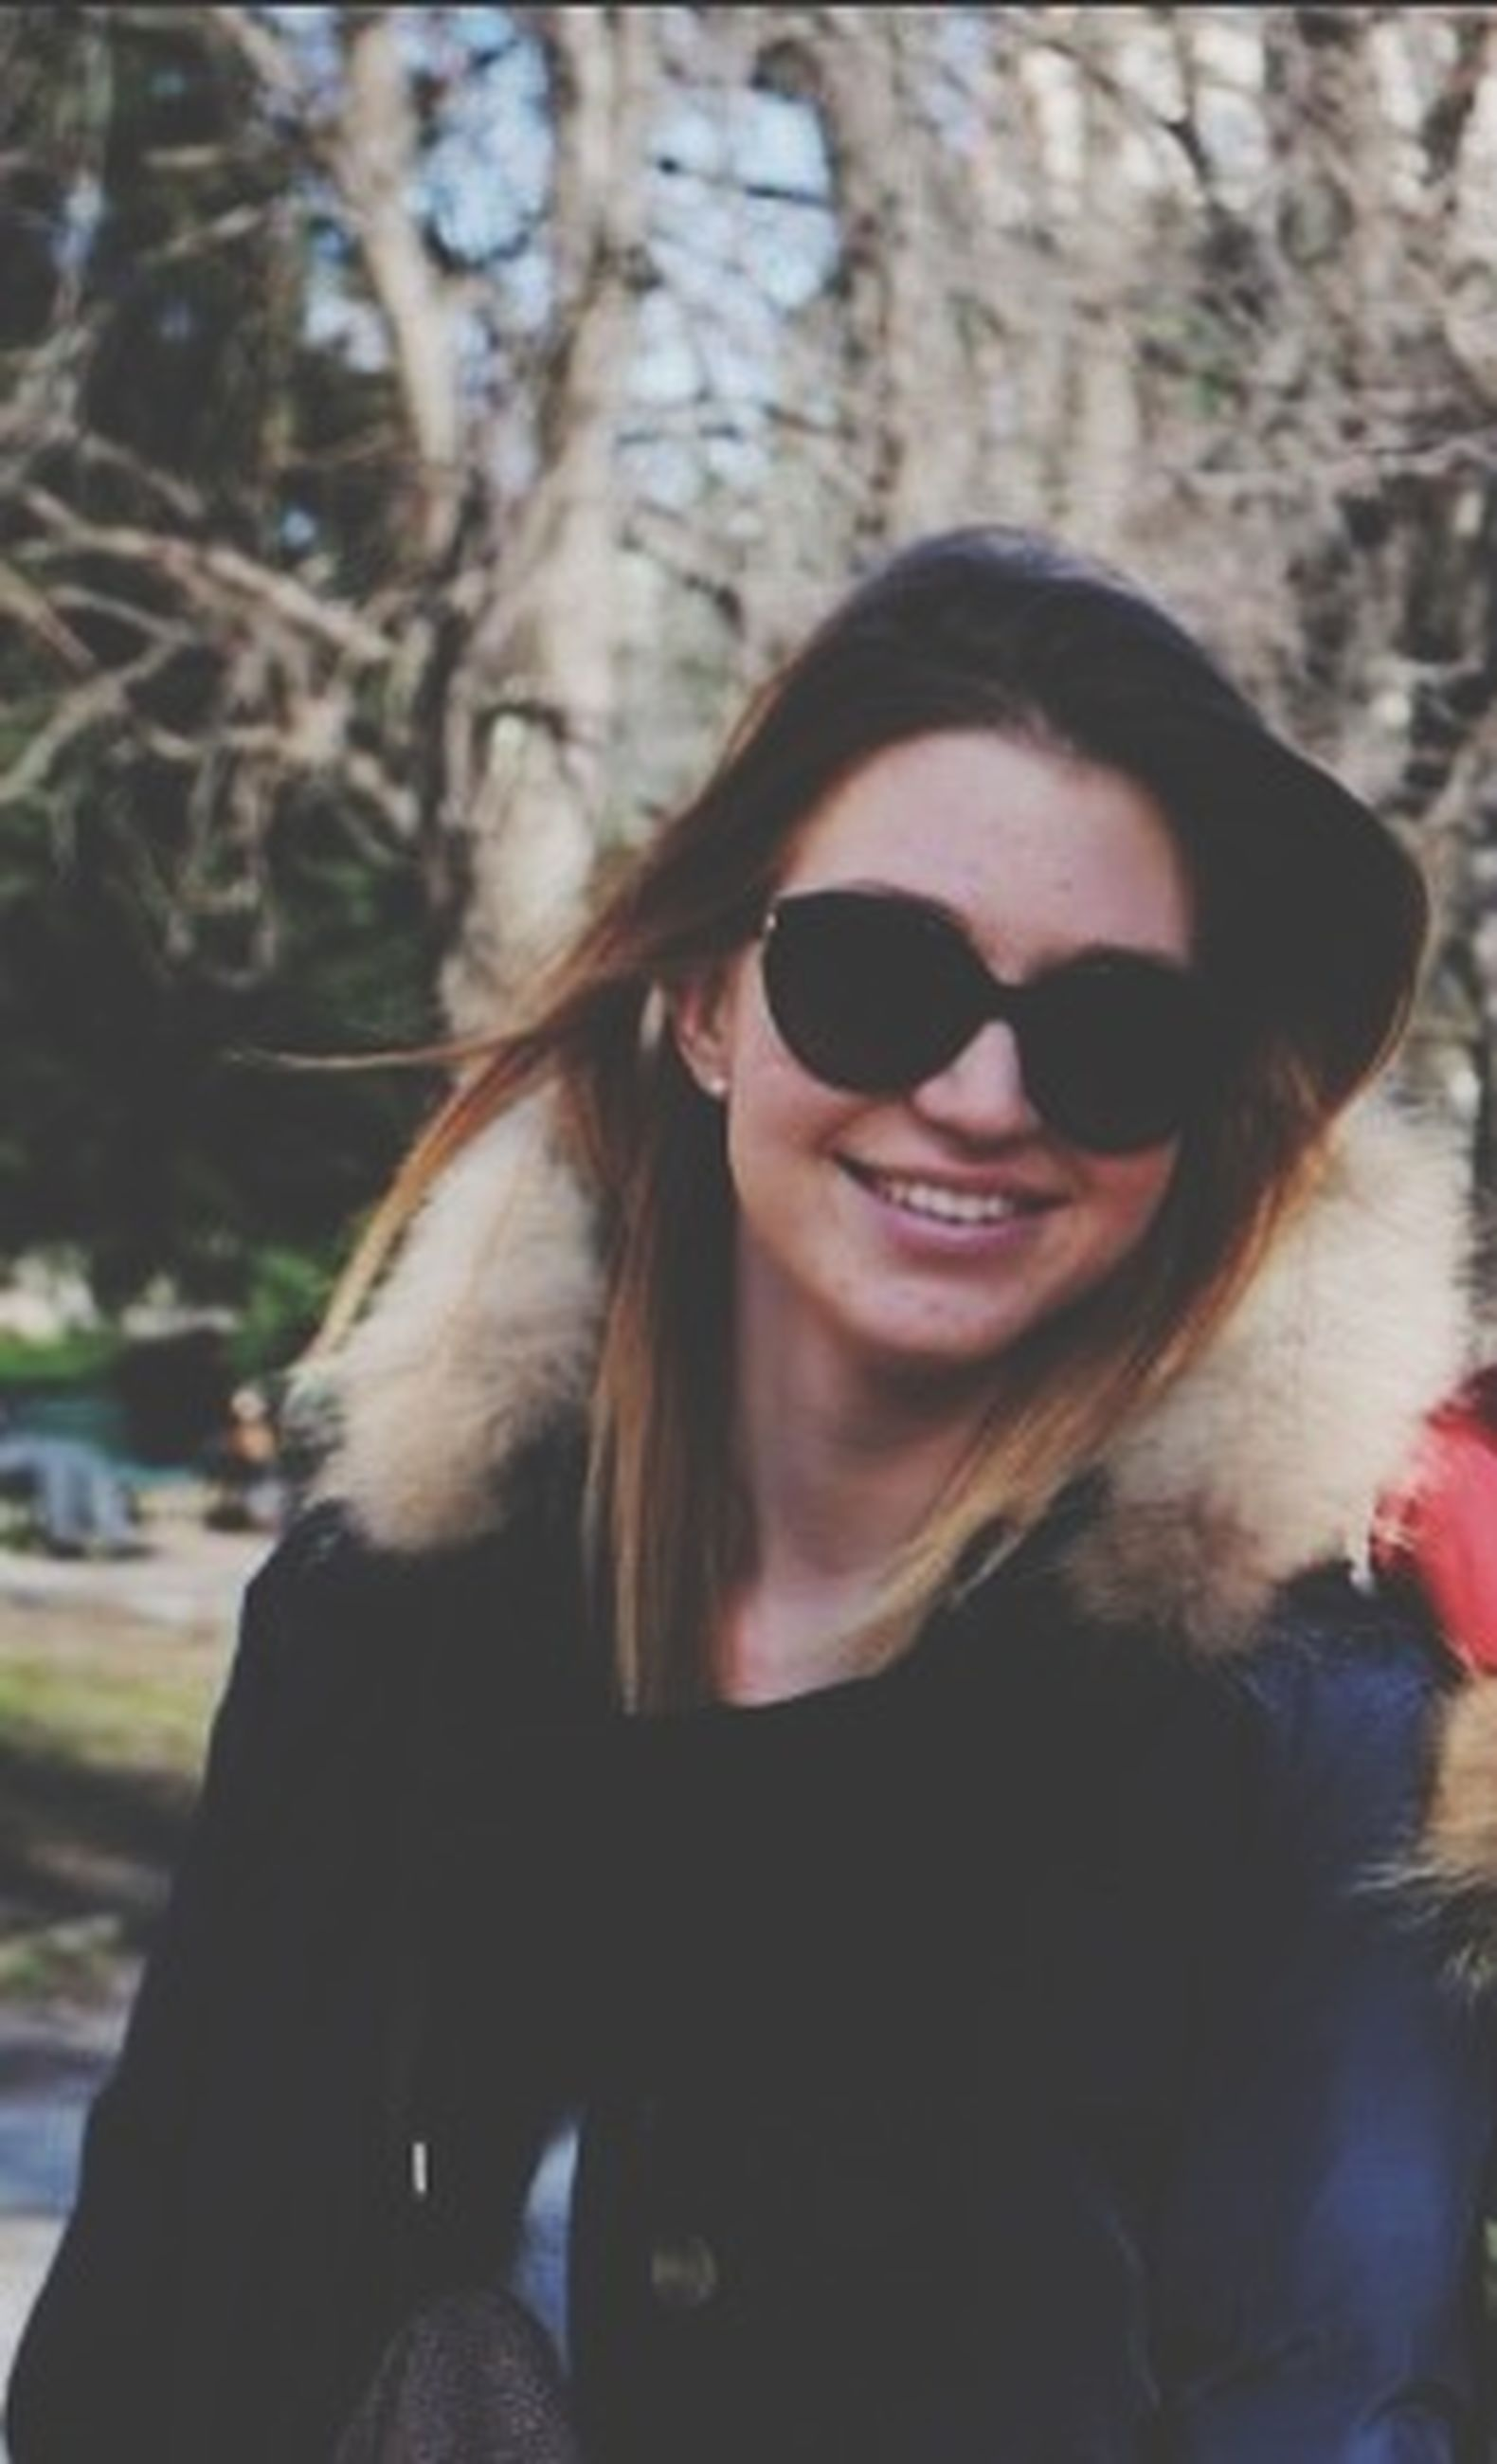 young adult, portrait, looking at camera, lifestyles, person, headshot, leisure activity, young women, sunglasses, front view, head and shoulders, smiling, focus on foreground, tree, casual clothing